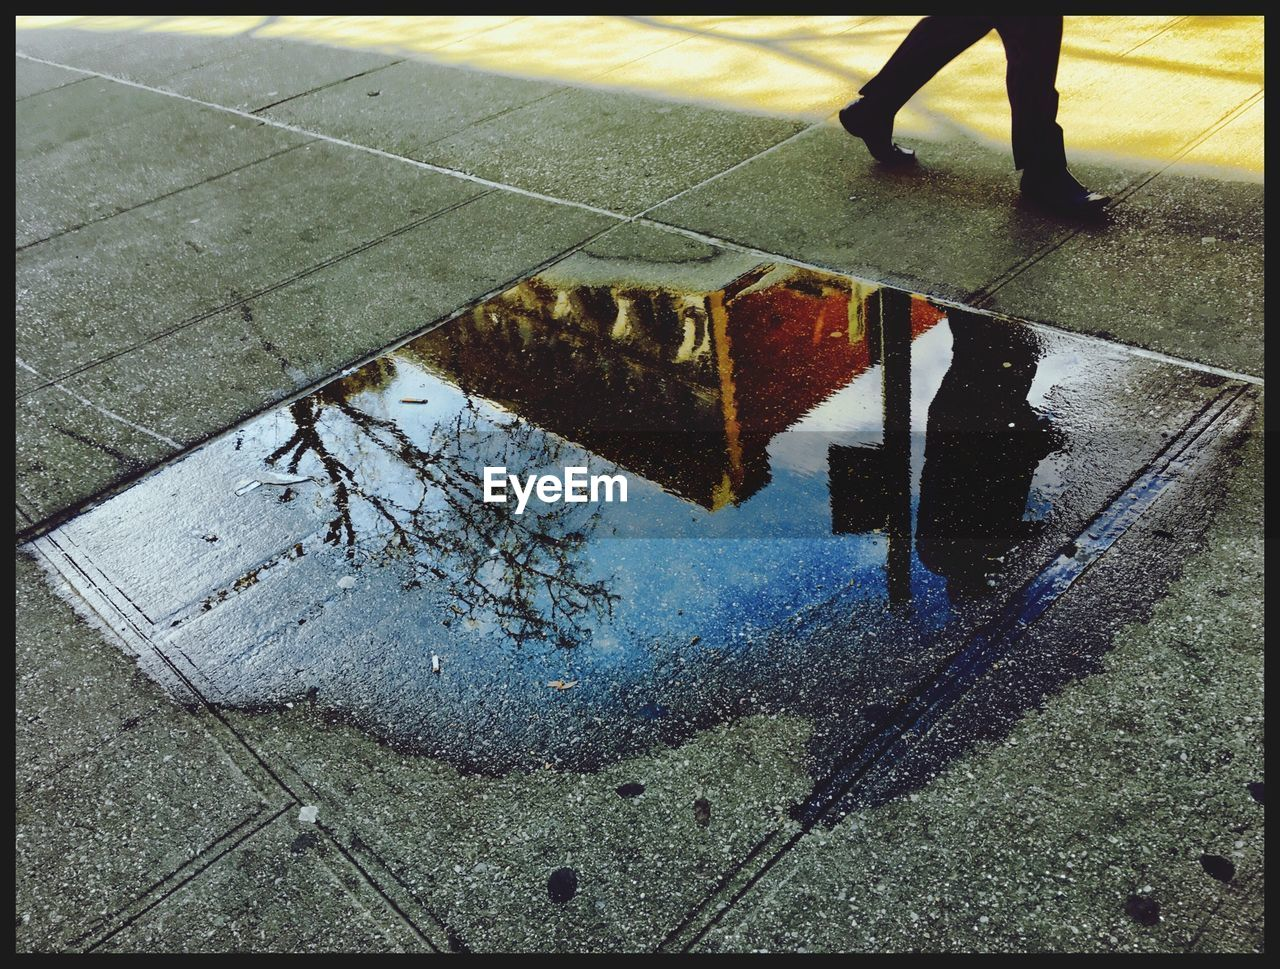 High Angle View Of Puddle With Reflection Of Person Walking On Footpath And Building